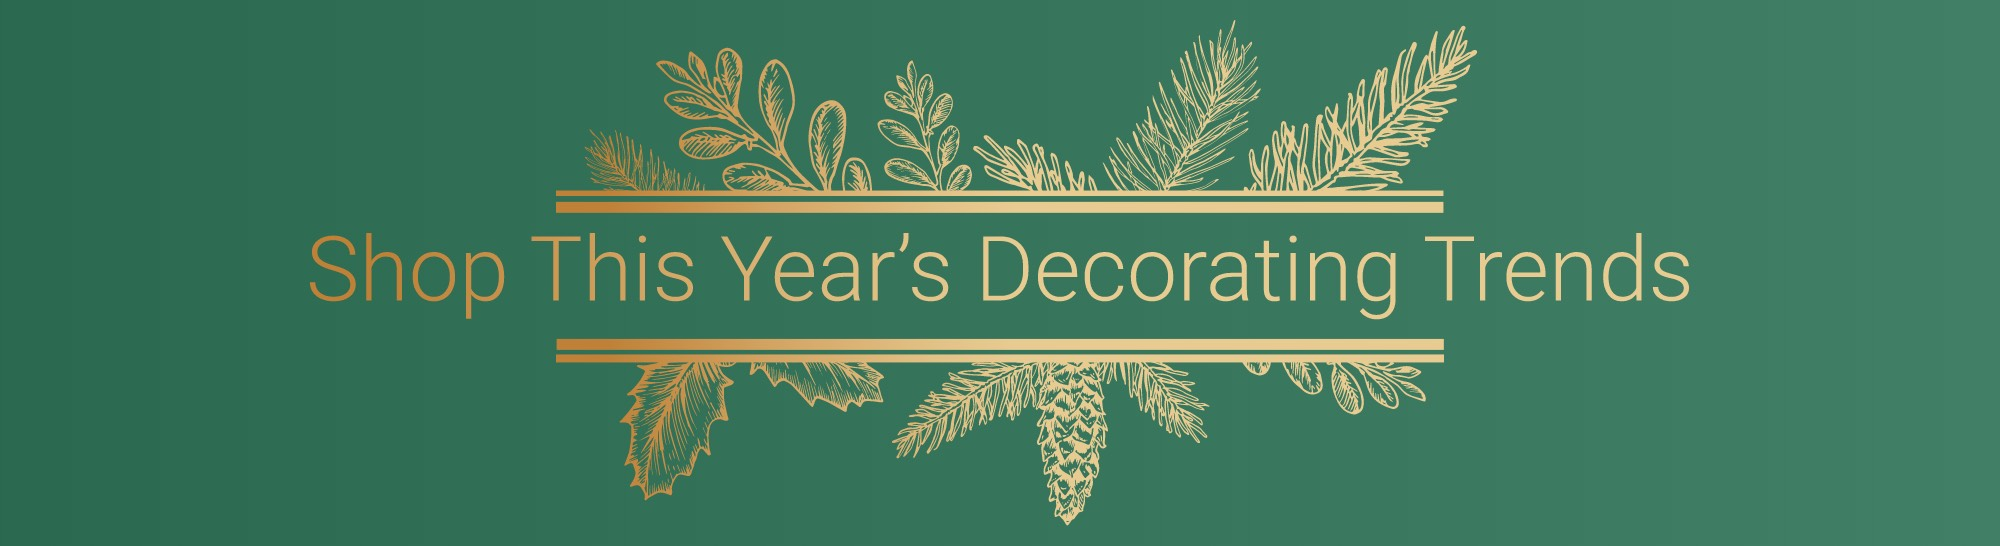 Shop This Year's Decorating Trends